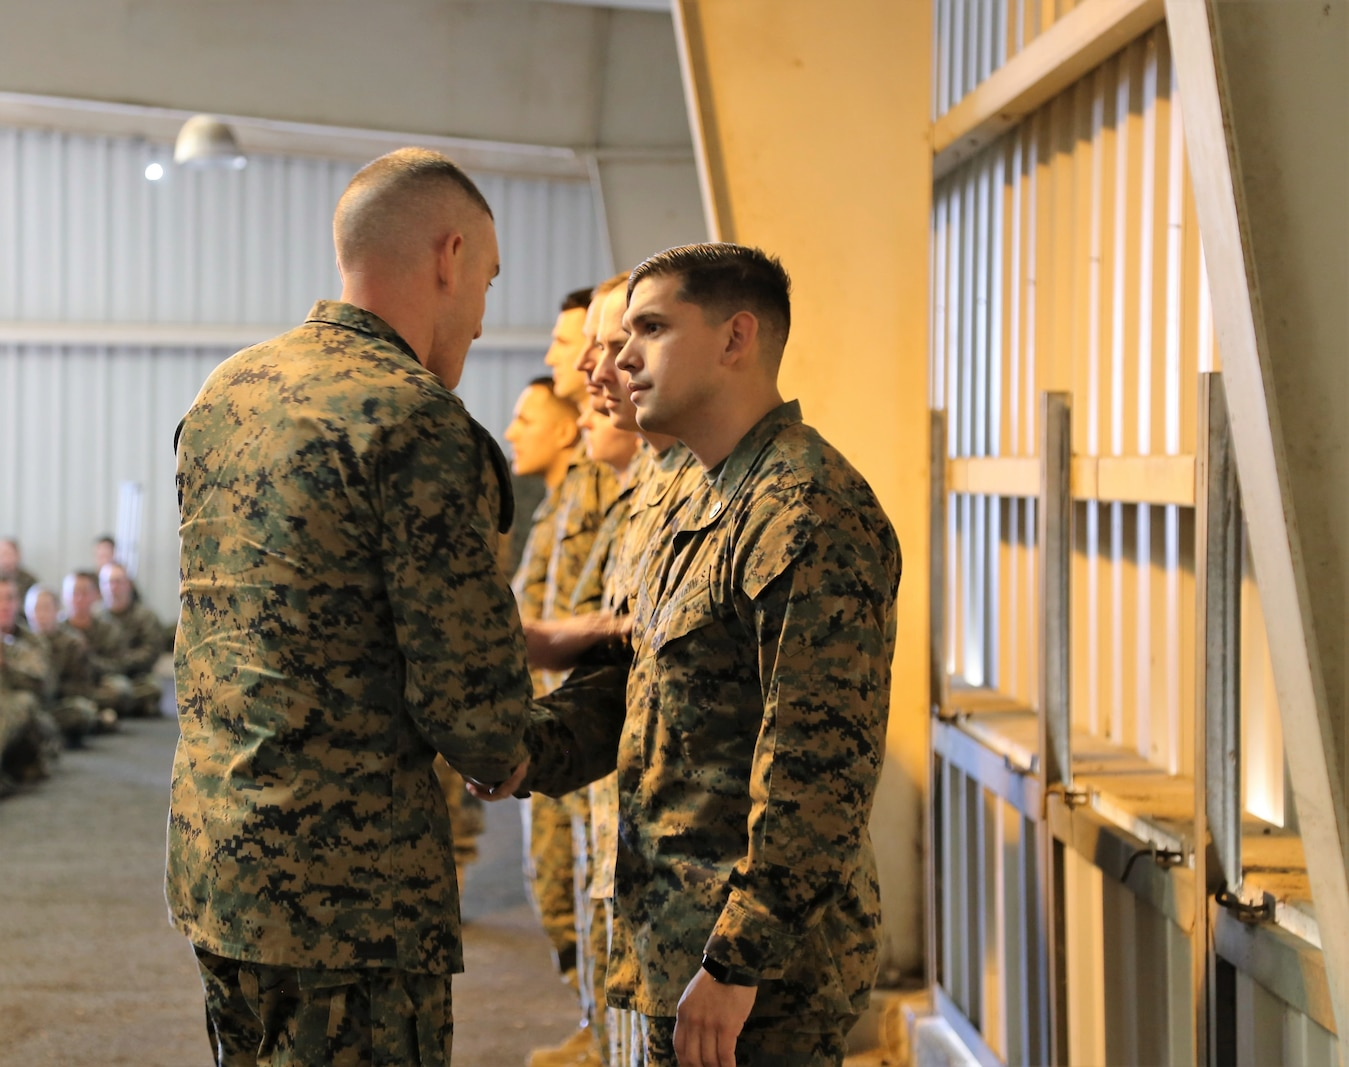 SSgt Joseph T. Dickenson the first Marine to receive a coin from Brigadier General Jason Q. Bohm Commanding General, Training Command at Fort Leonard Wood, MO Jan. 24th, 2018. SSgt Dickenson is in charge of the Leadership Professional Development Training program which was only put in effect less than a year and has been successful with his leadership, the command takes time to recognize him for his outstanding effort.  (U.S. Marine Corps photo by Sgt. Teng Yang)